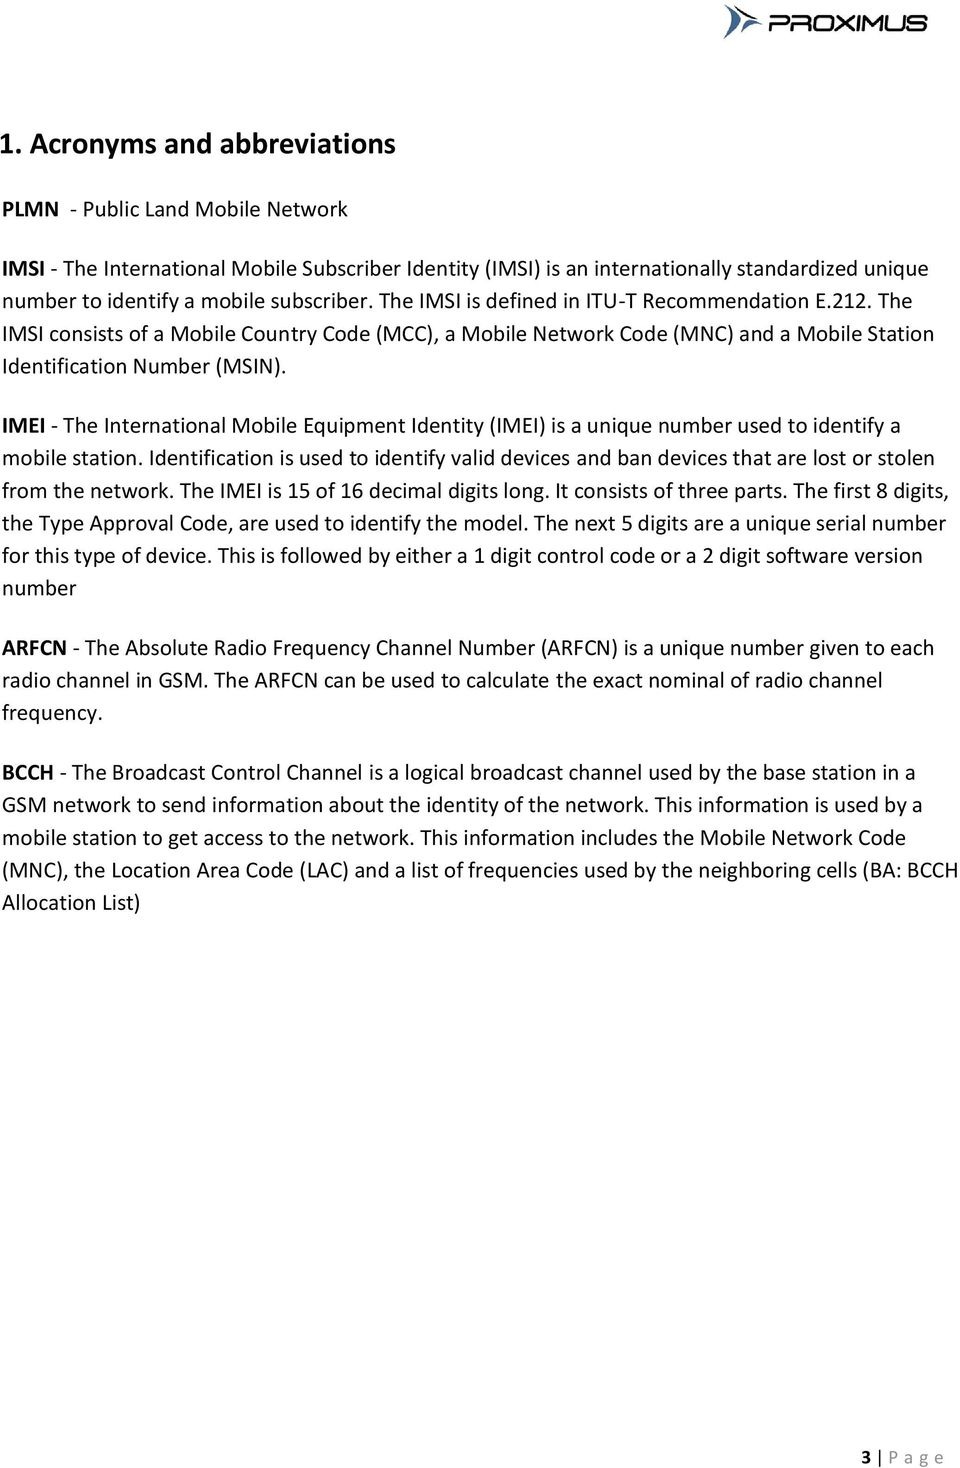 MicroNet dual band IMSI and IMEI catcher - PDF